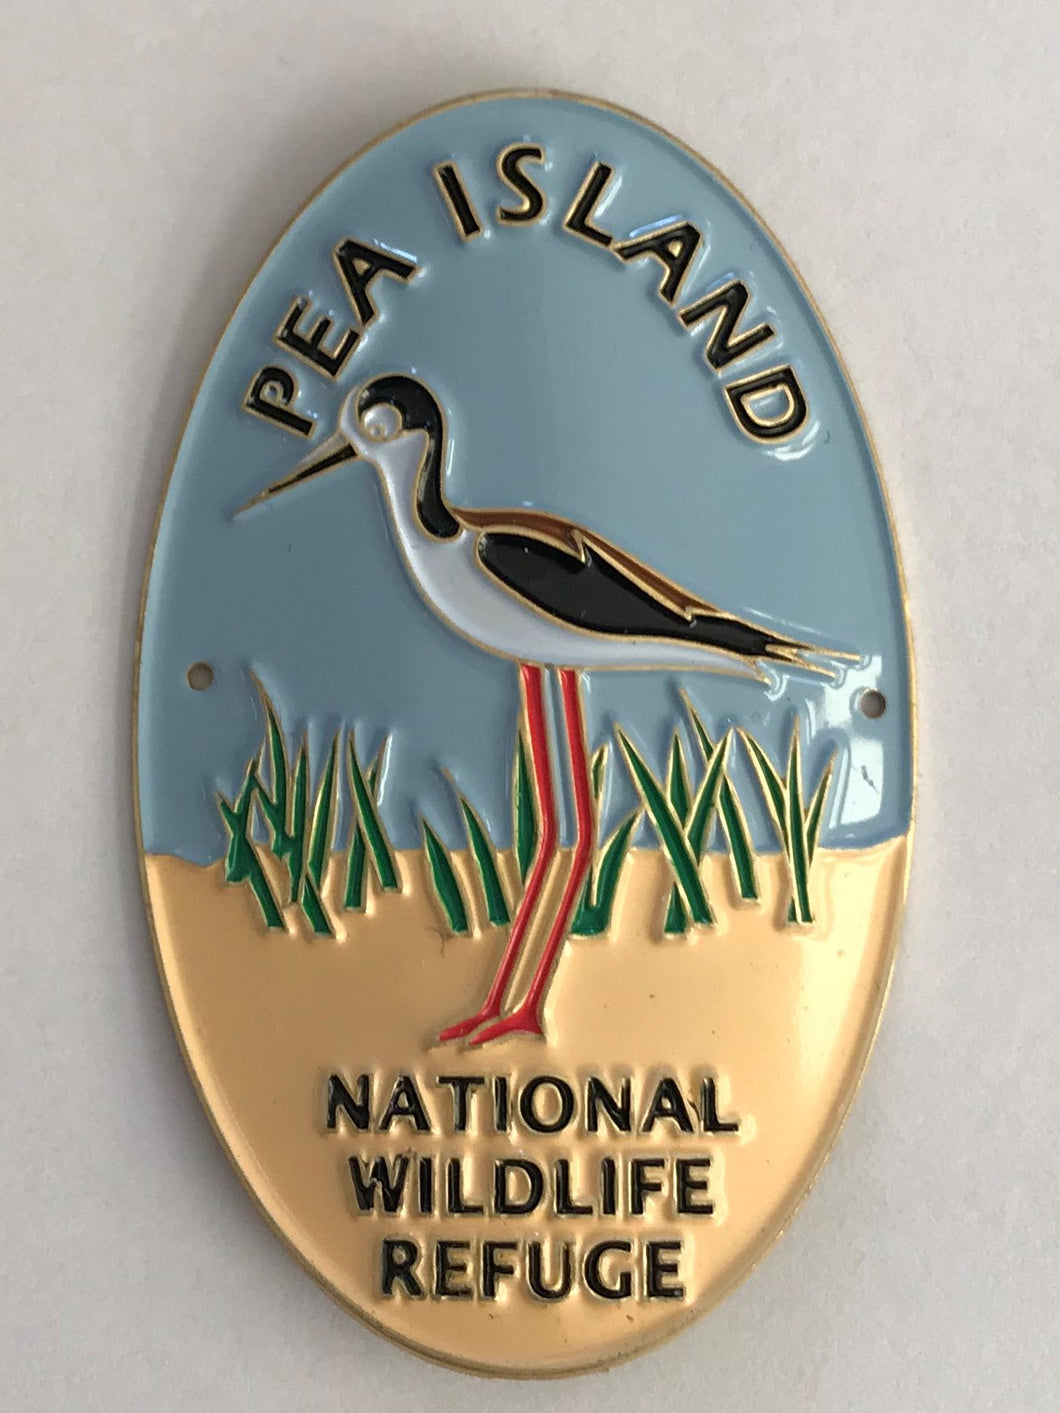 Pea Island National Wildlife Refuge Hiking Medallion